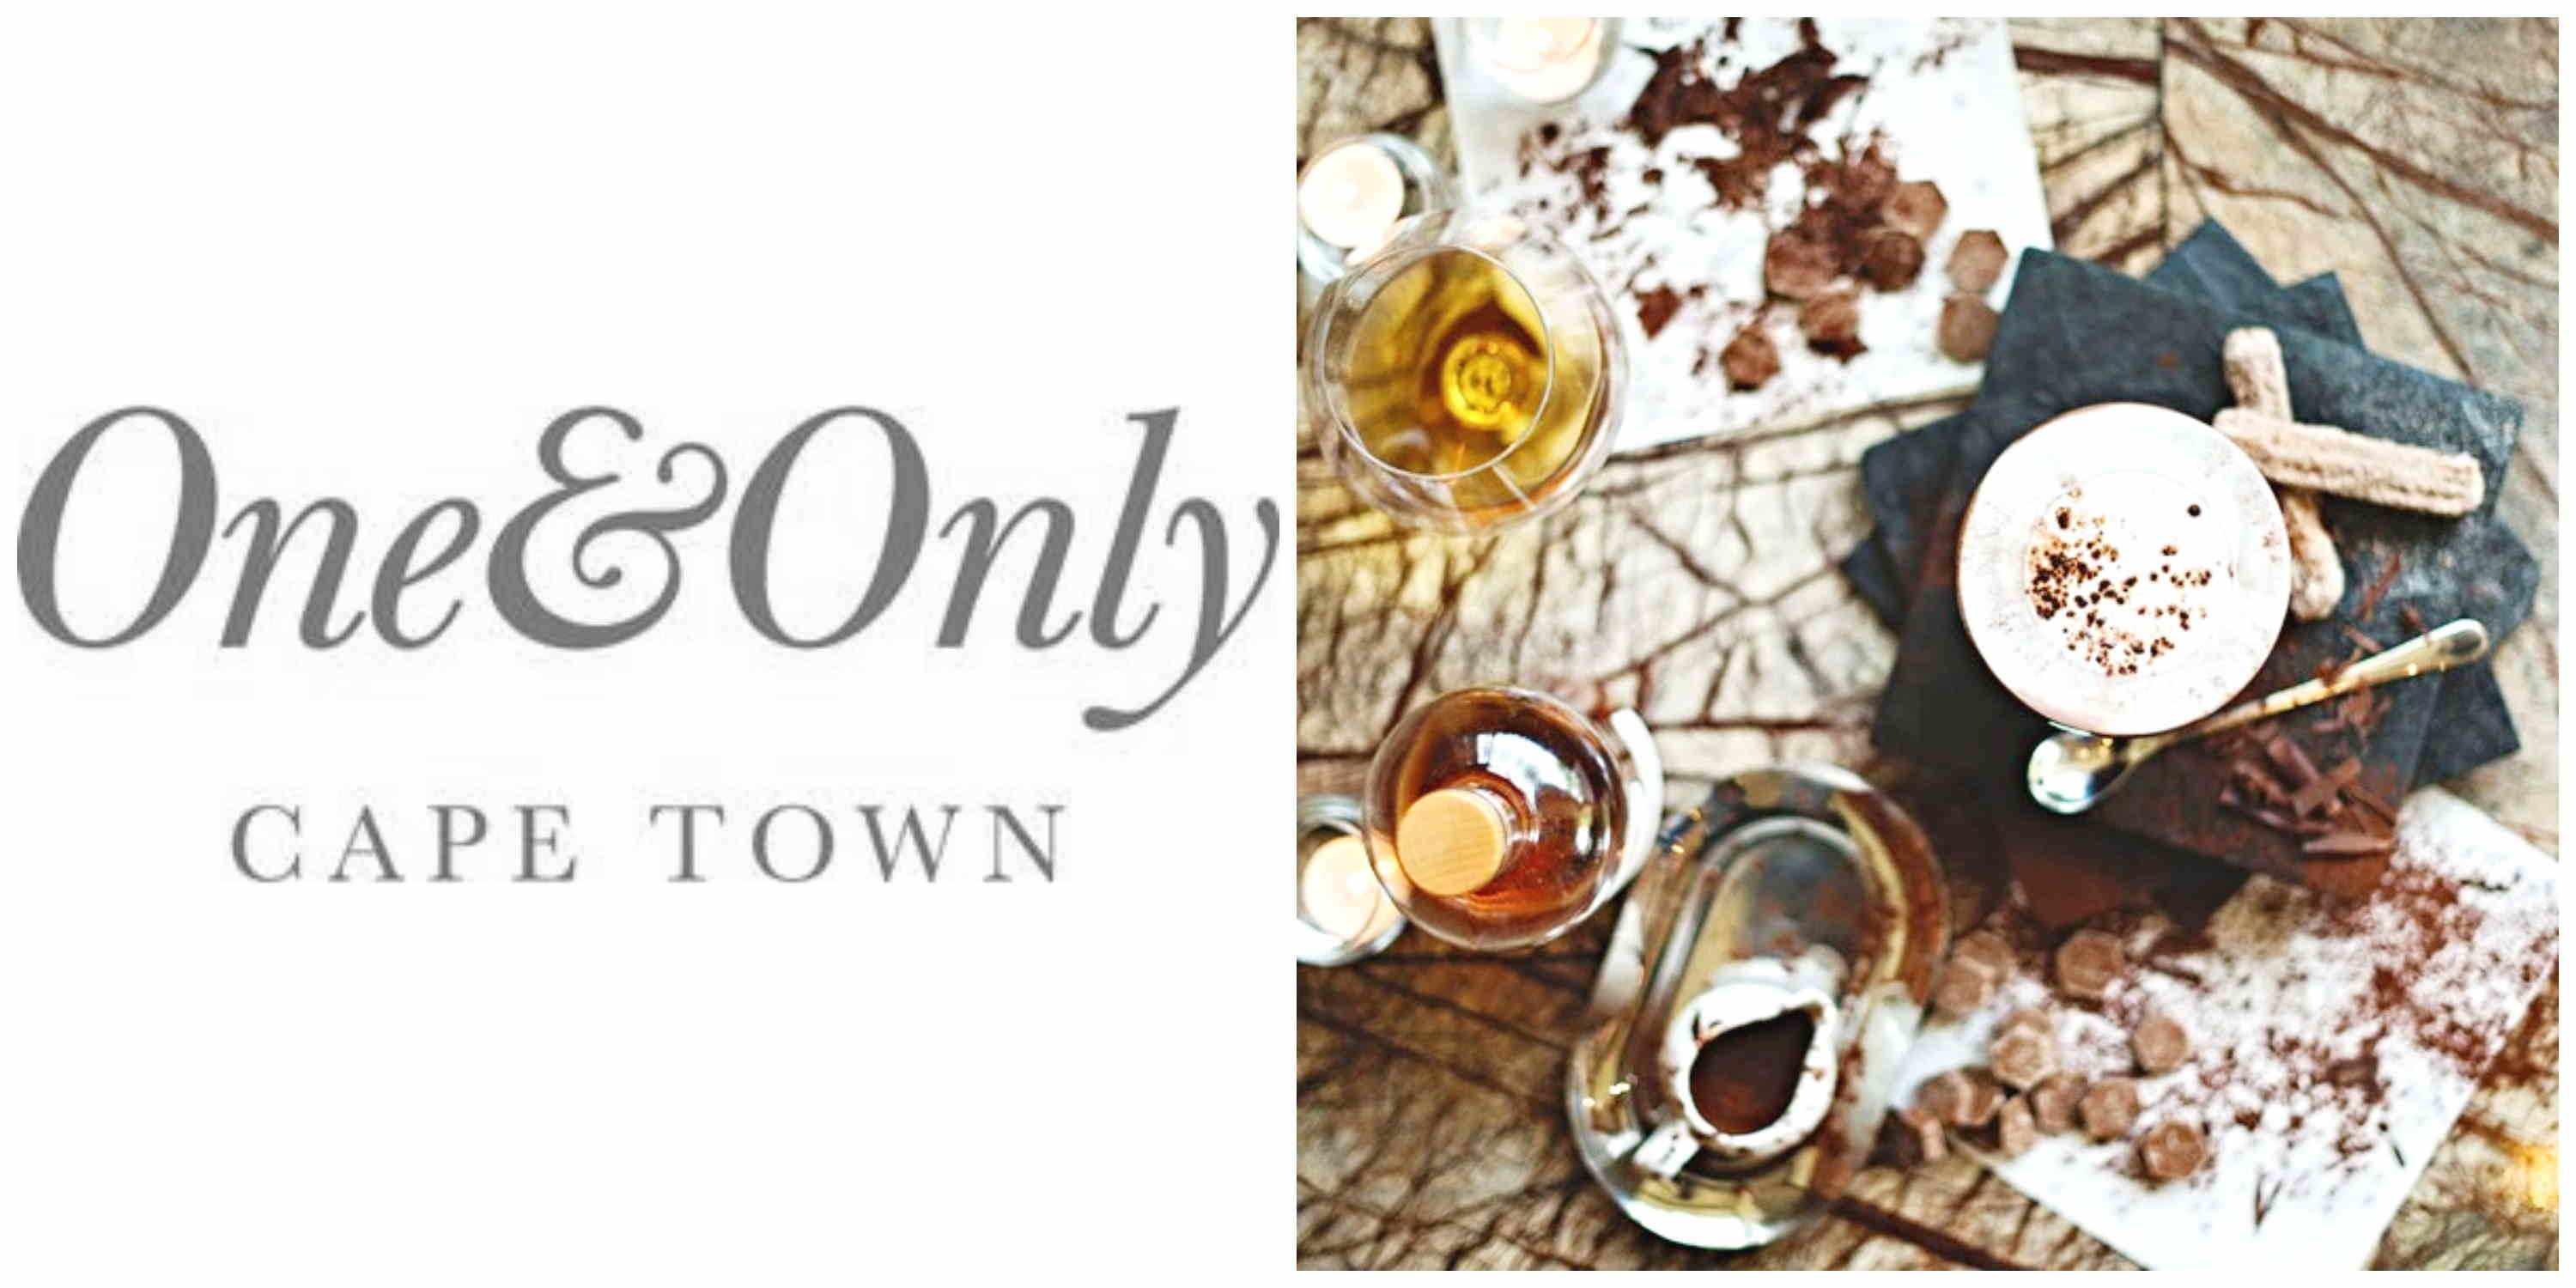 The One and Only, V&A Waterfront, Cape Town, Chocolate, Fondue, Food pairing